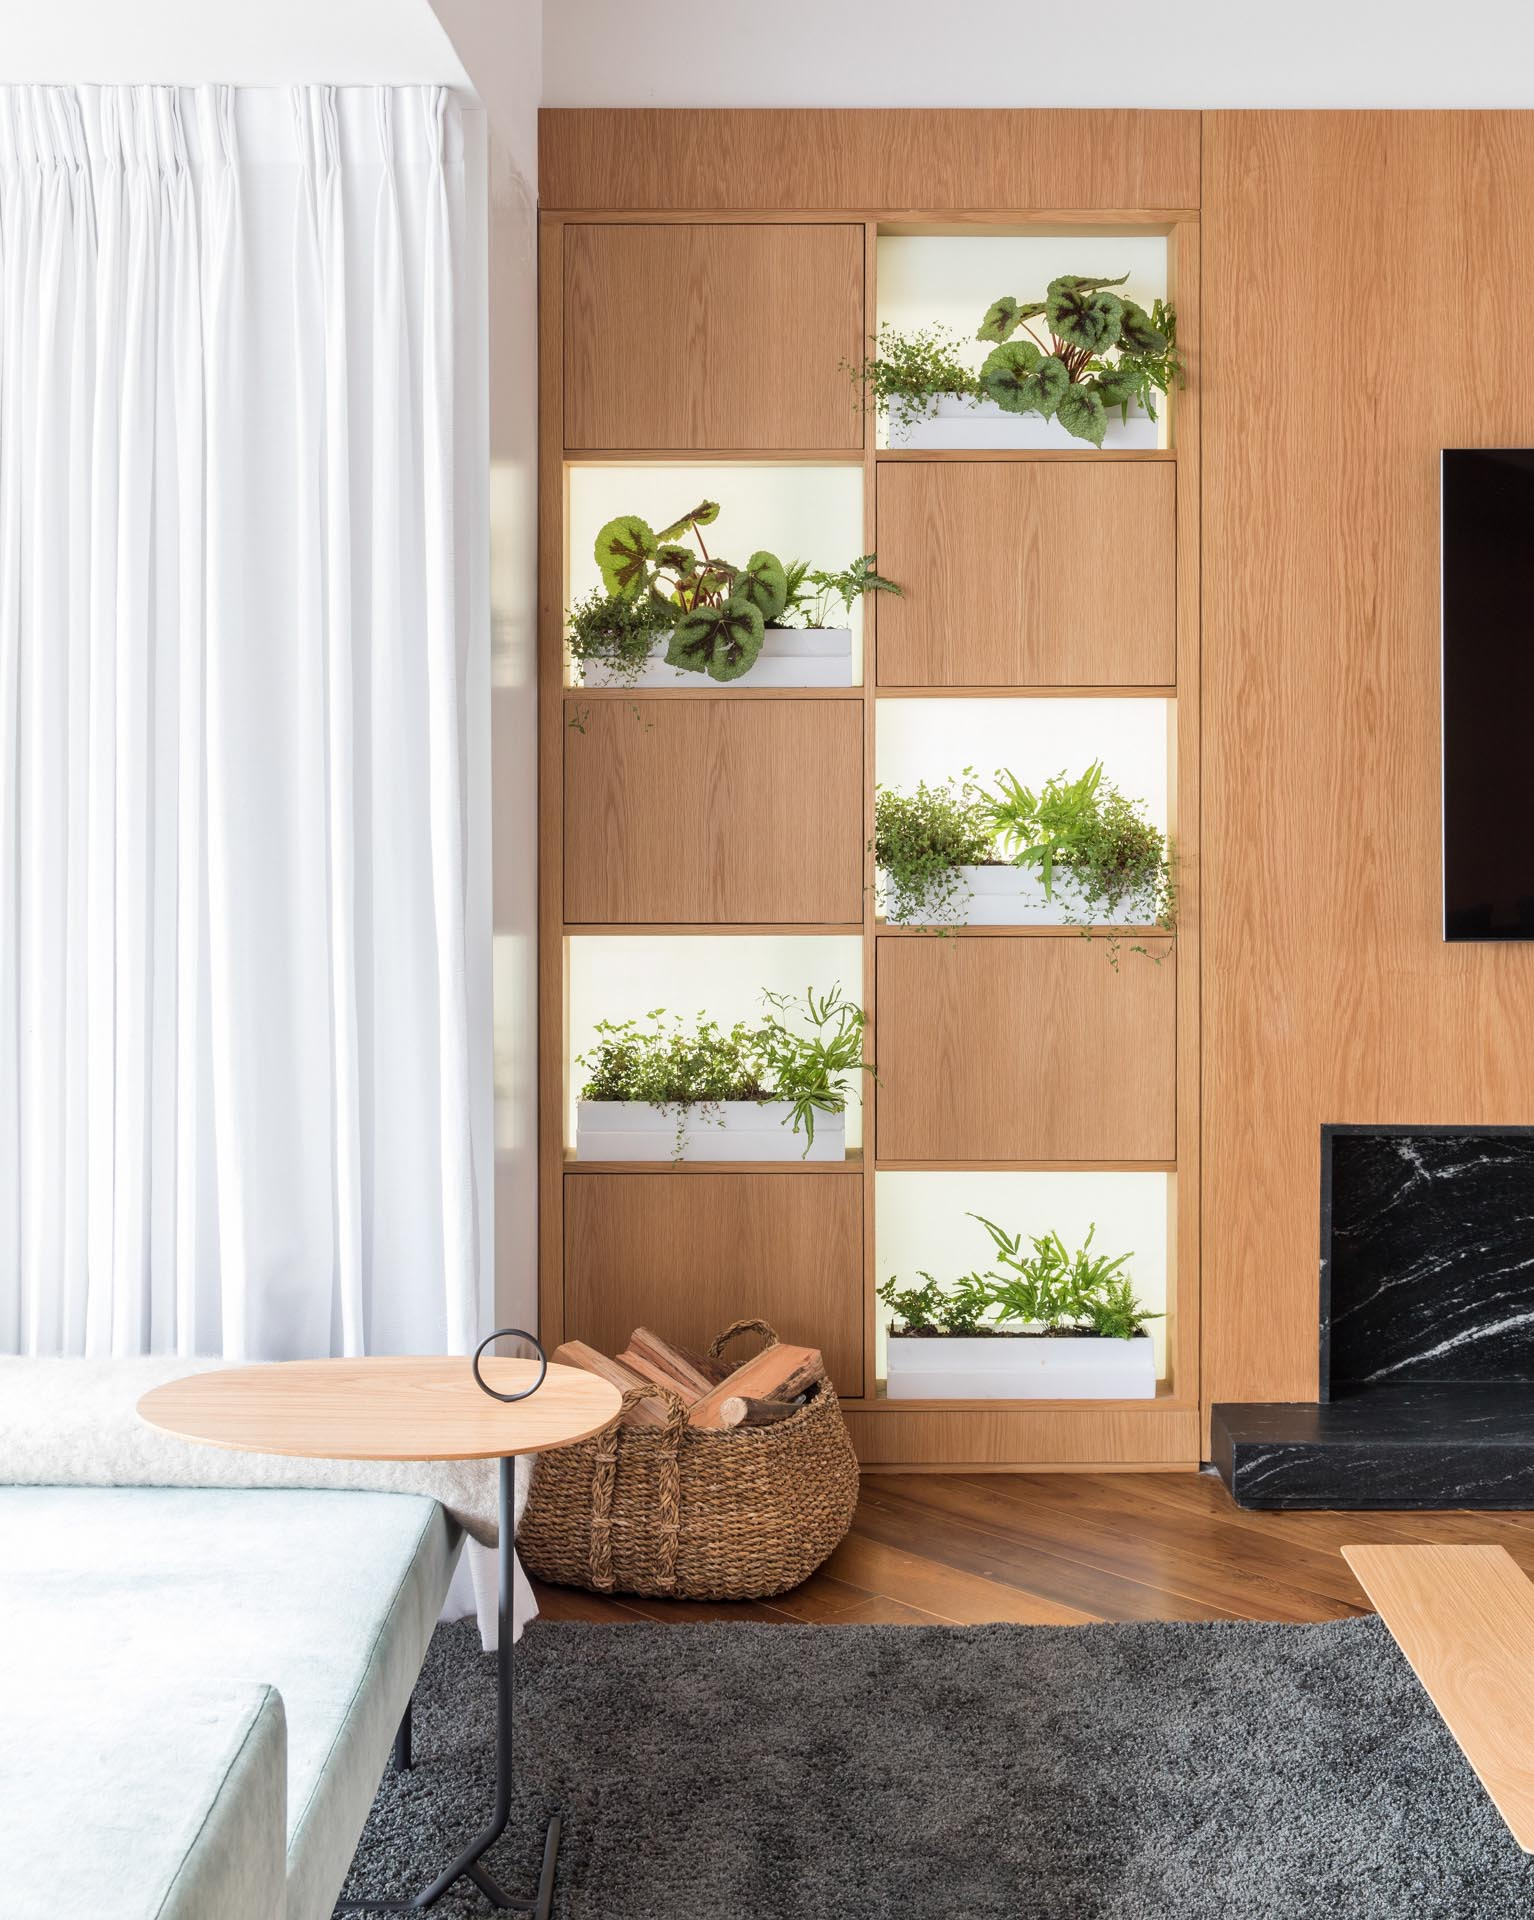 Small planters sit on open shelves within a wood wall.